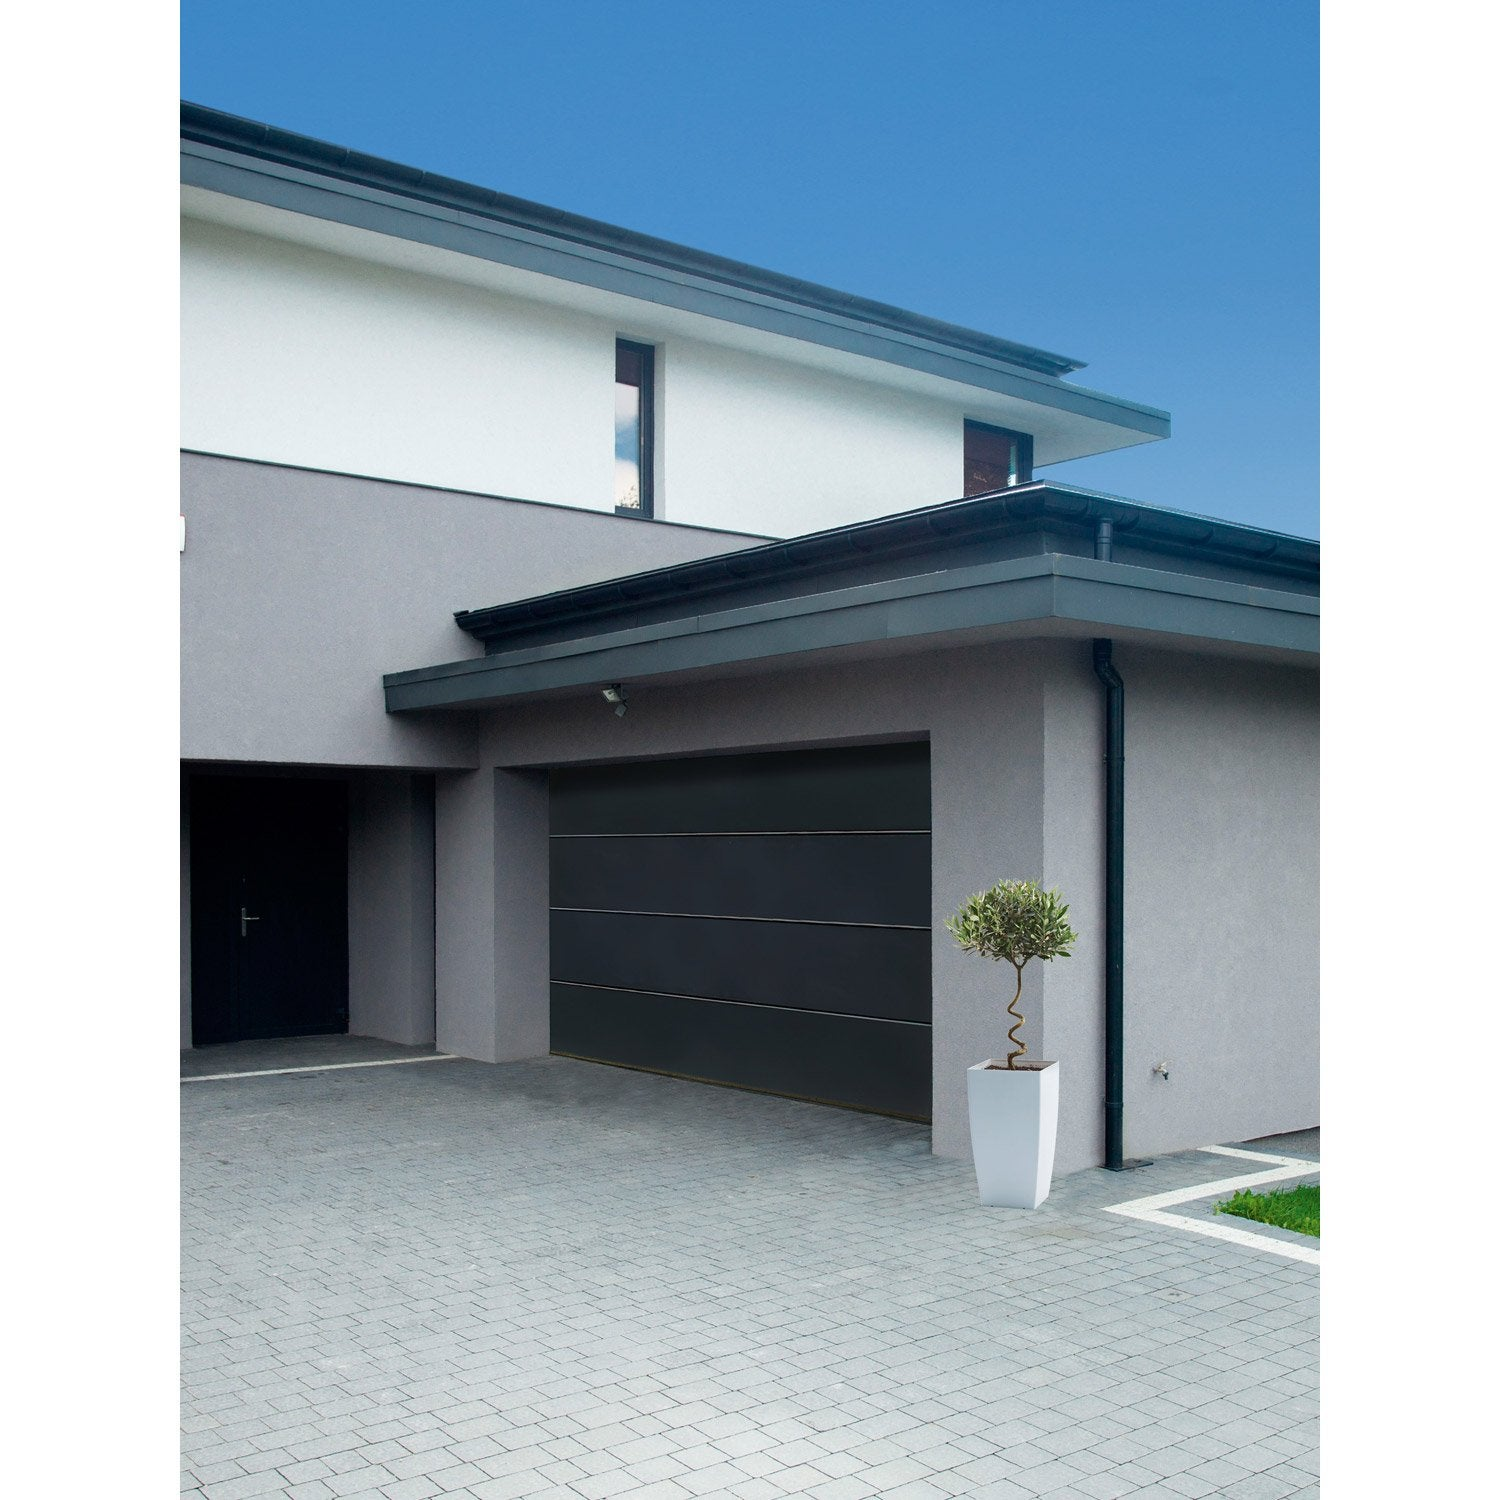 Porte de garage sectionnelle motoris e artens premium x cm leroy merlin - Porte de garage sectionnelle gris anthracite ...